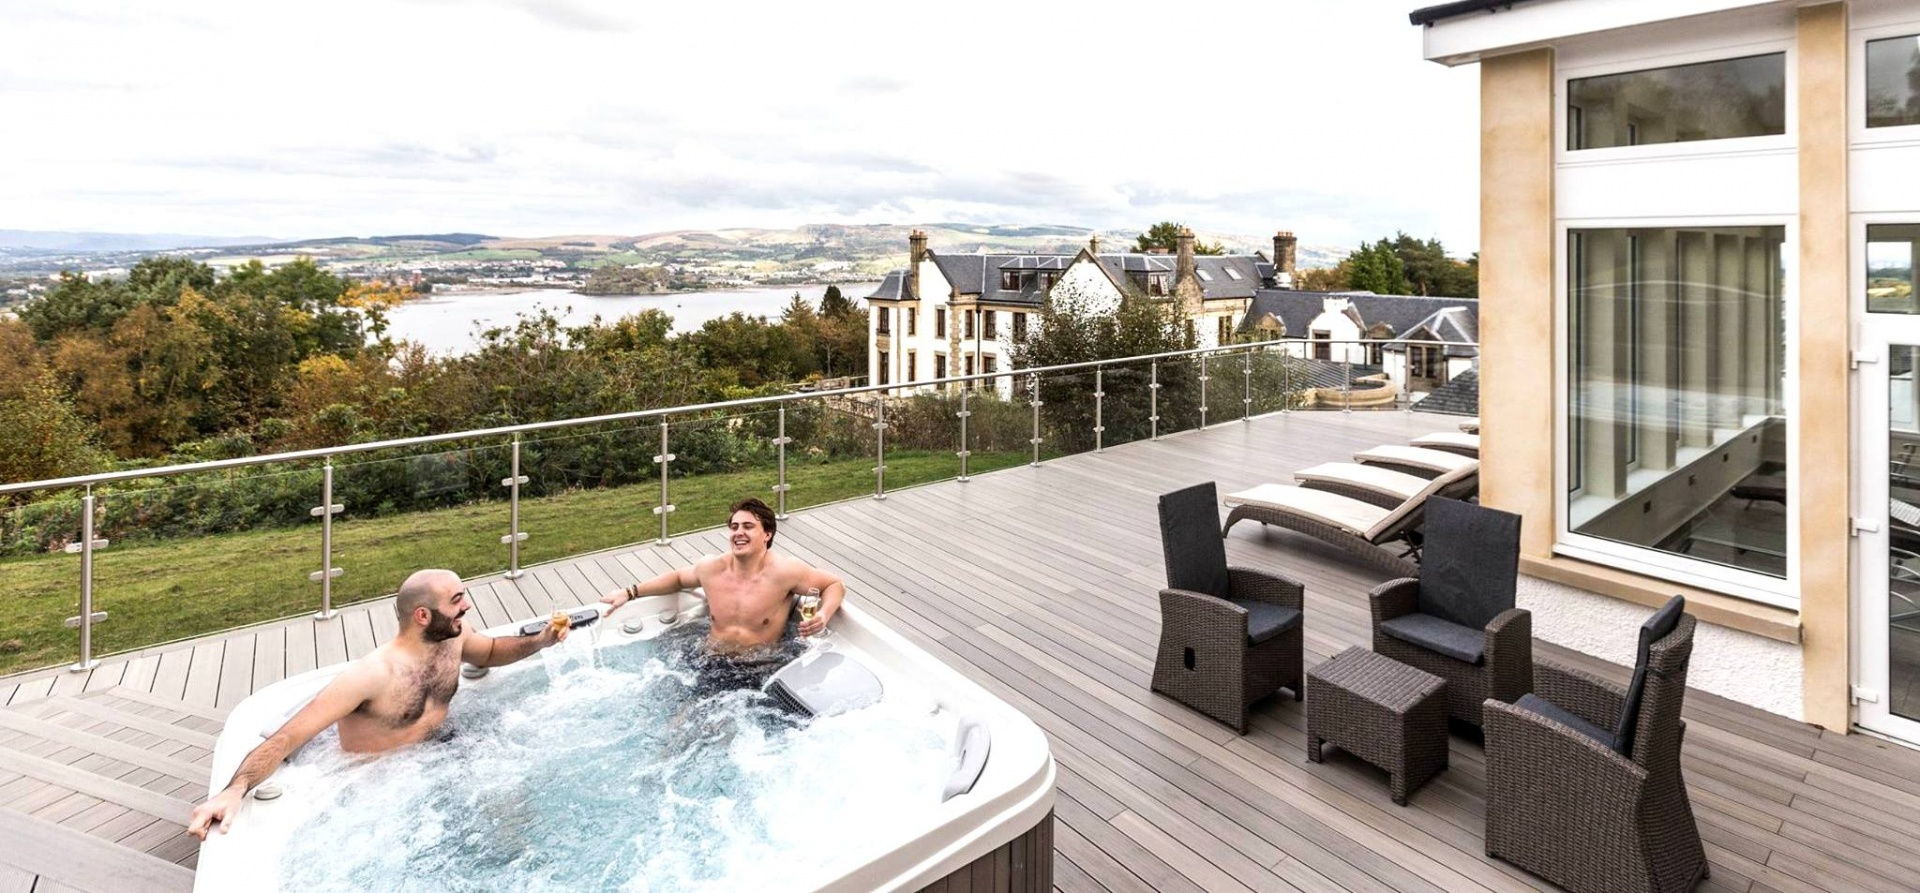 Relaxing Full Day Spa Experience in Glasgow-13